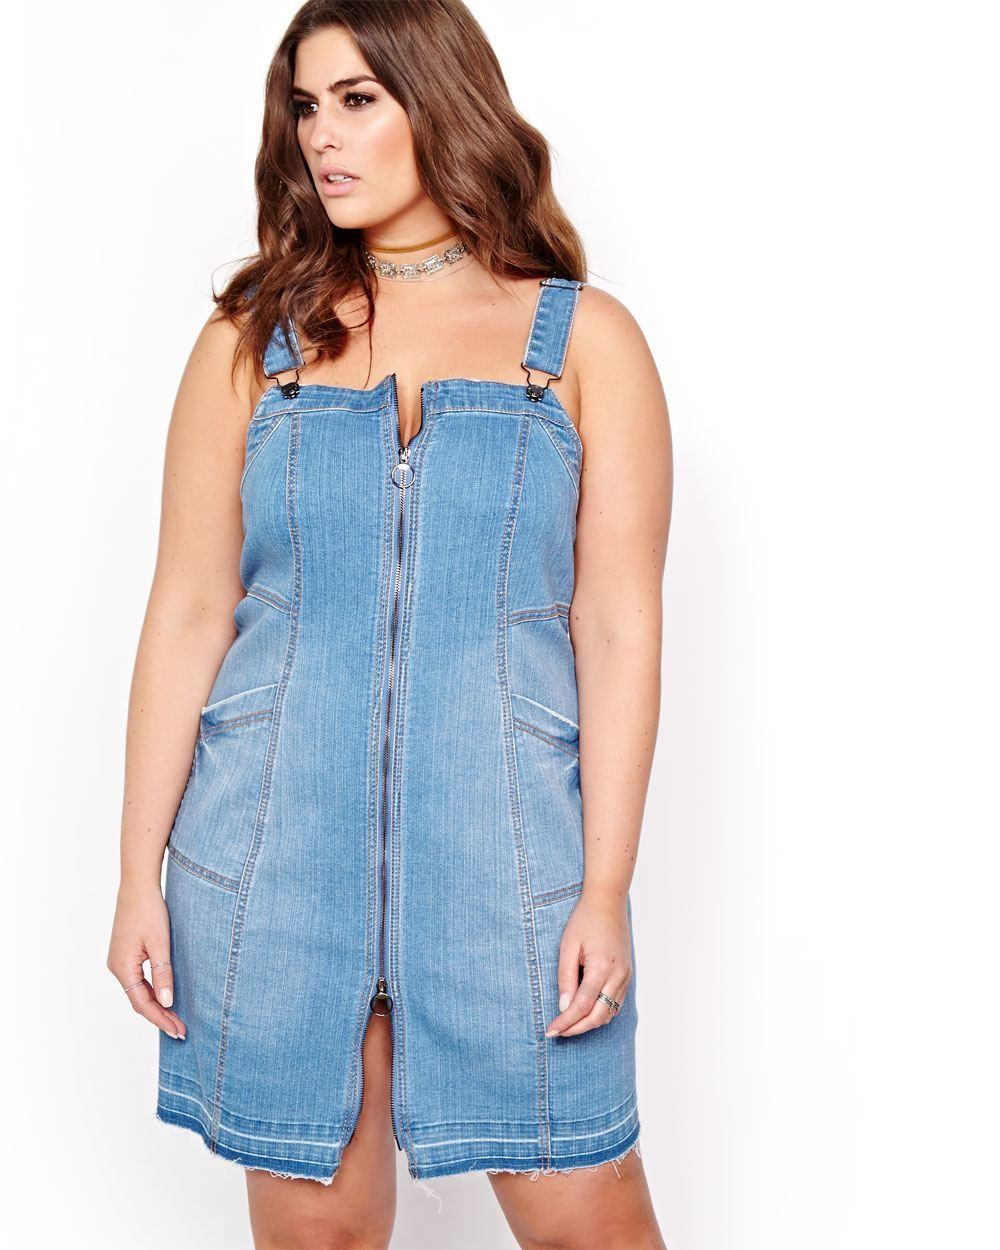 Keep it Cute in These 12 Plus Size Denim Dresses